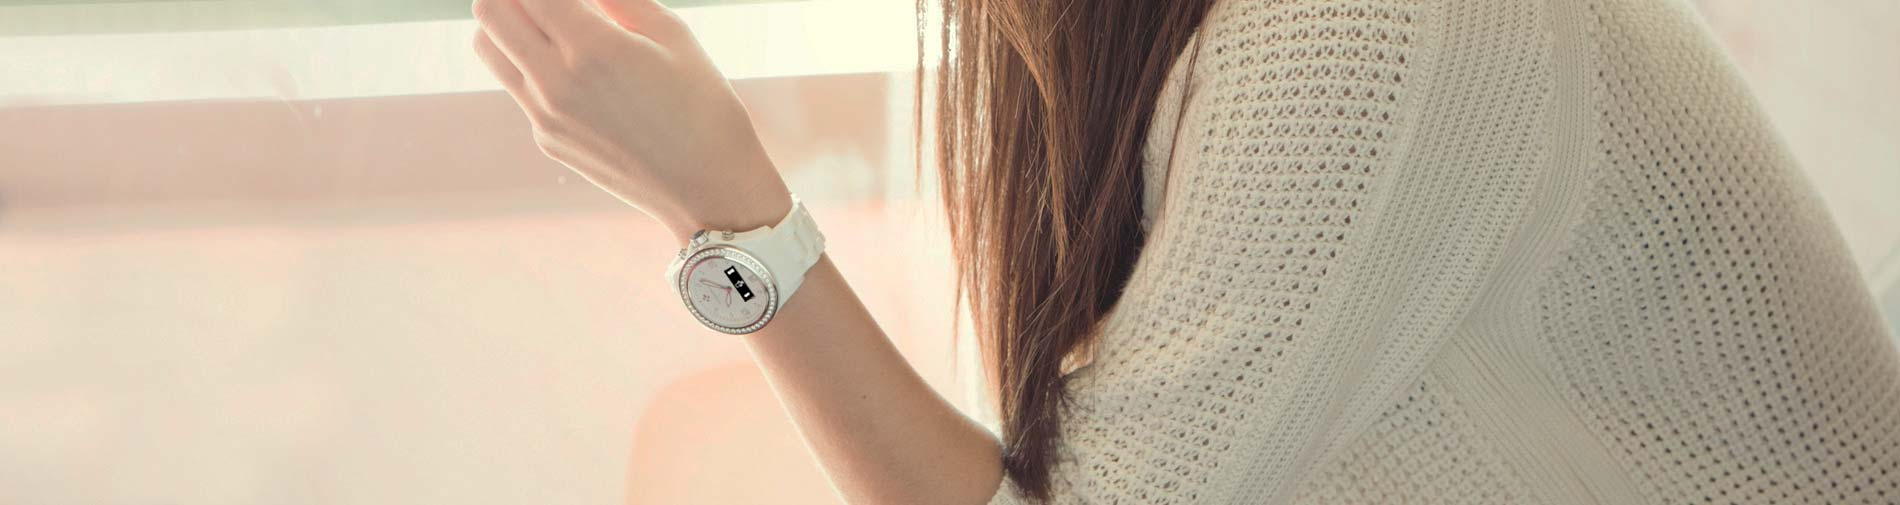 About MyKronoz, stylish, intuitive and functional smartwatch designer